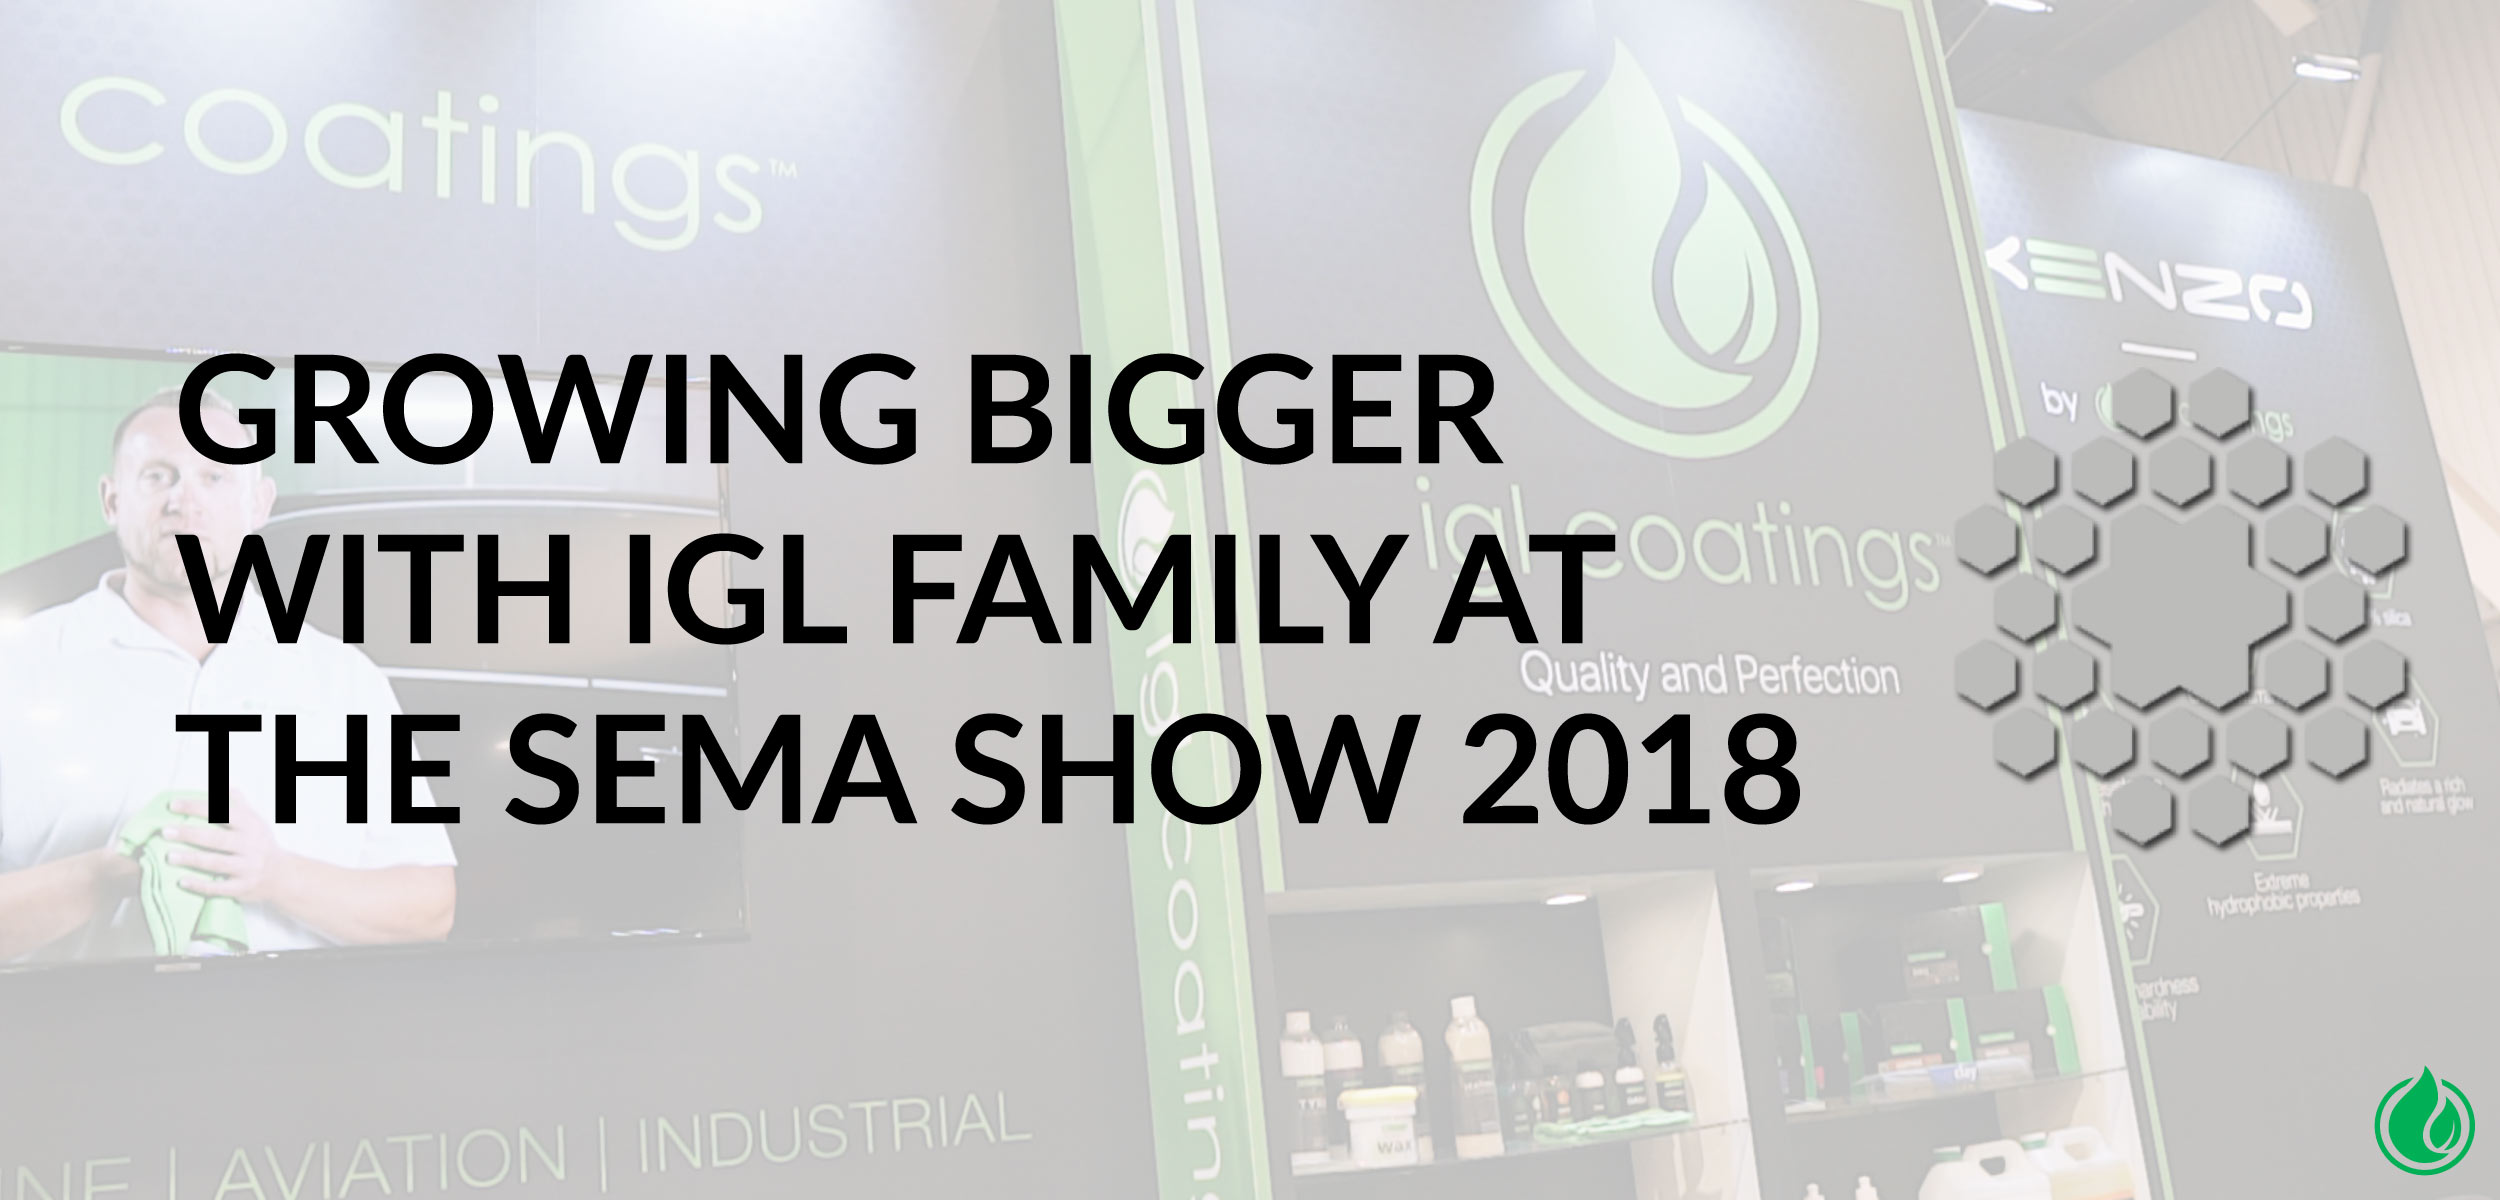 GROWING-BIGGER-IGL-COATINGS-SEMA-SHOW-2018-NEW-PRODUCT